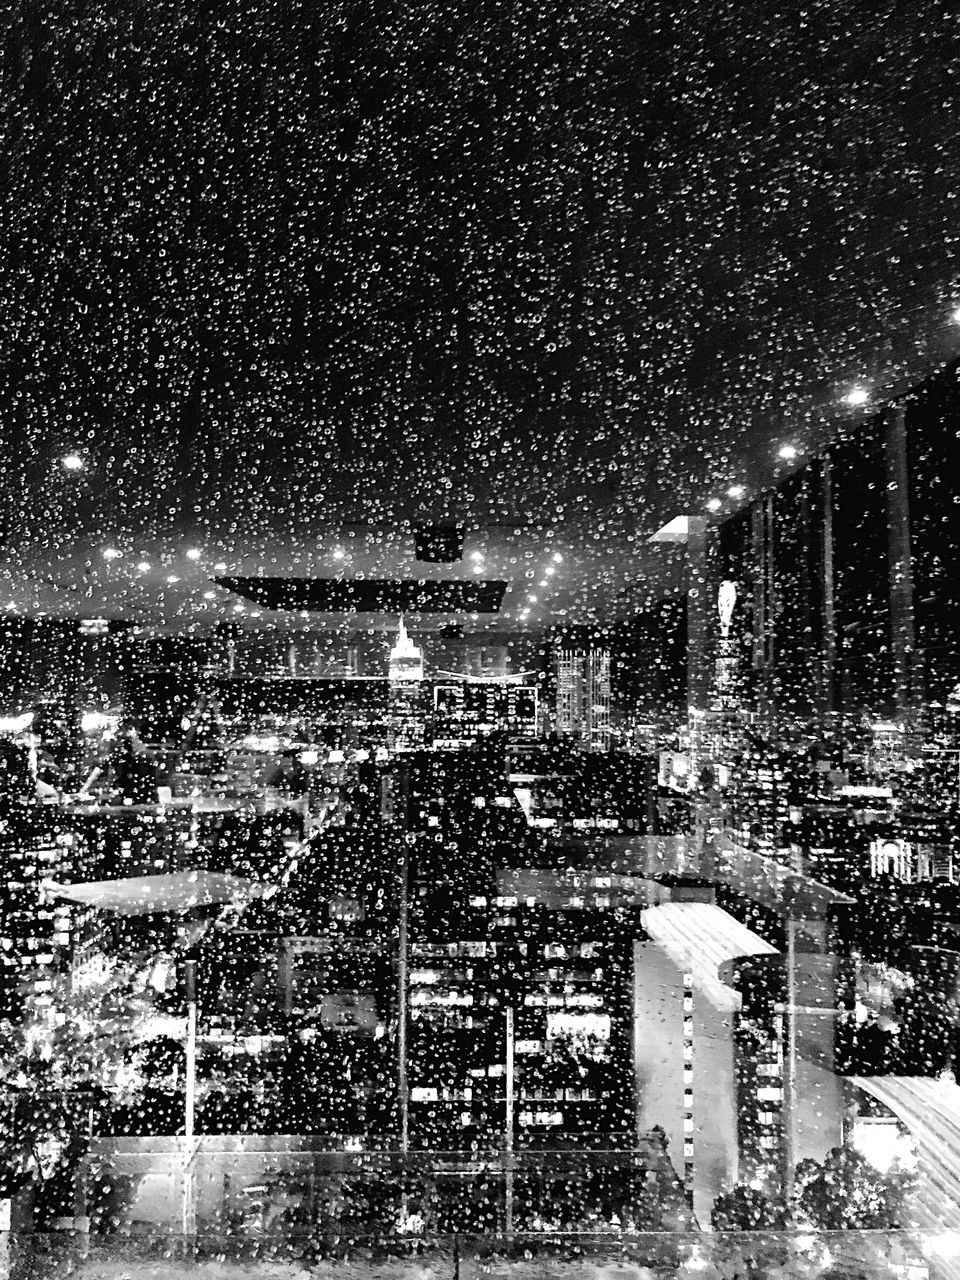 night, snow, built structure, building exterior, architecture, illuminated, snowing, cold temperature, winter, city, nature, no people, building, blizzard, sky, outdoors, extreme weather, street, lighting equipment, cityscape, skyscraper, office building exterior